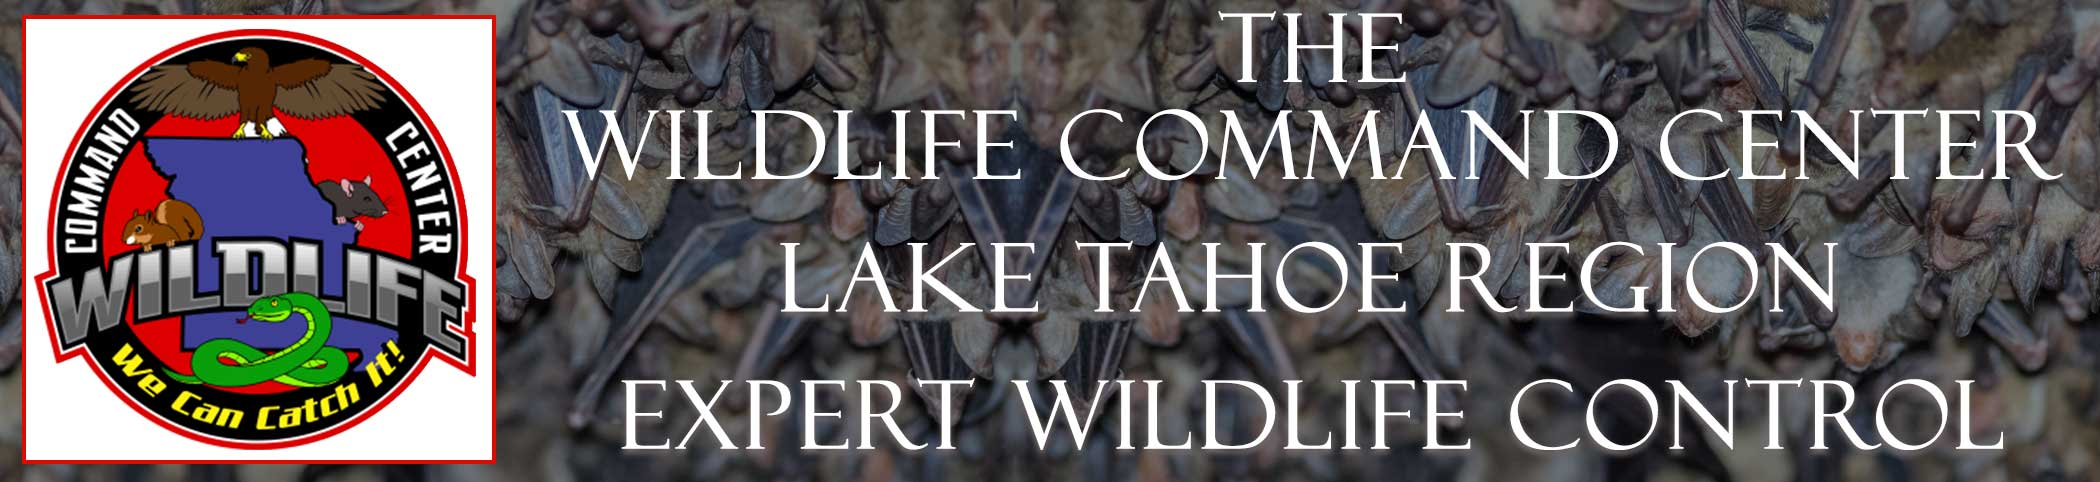 lake-tahoe-region-wildlife-command-center